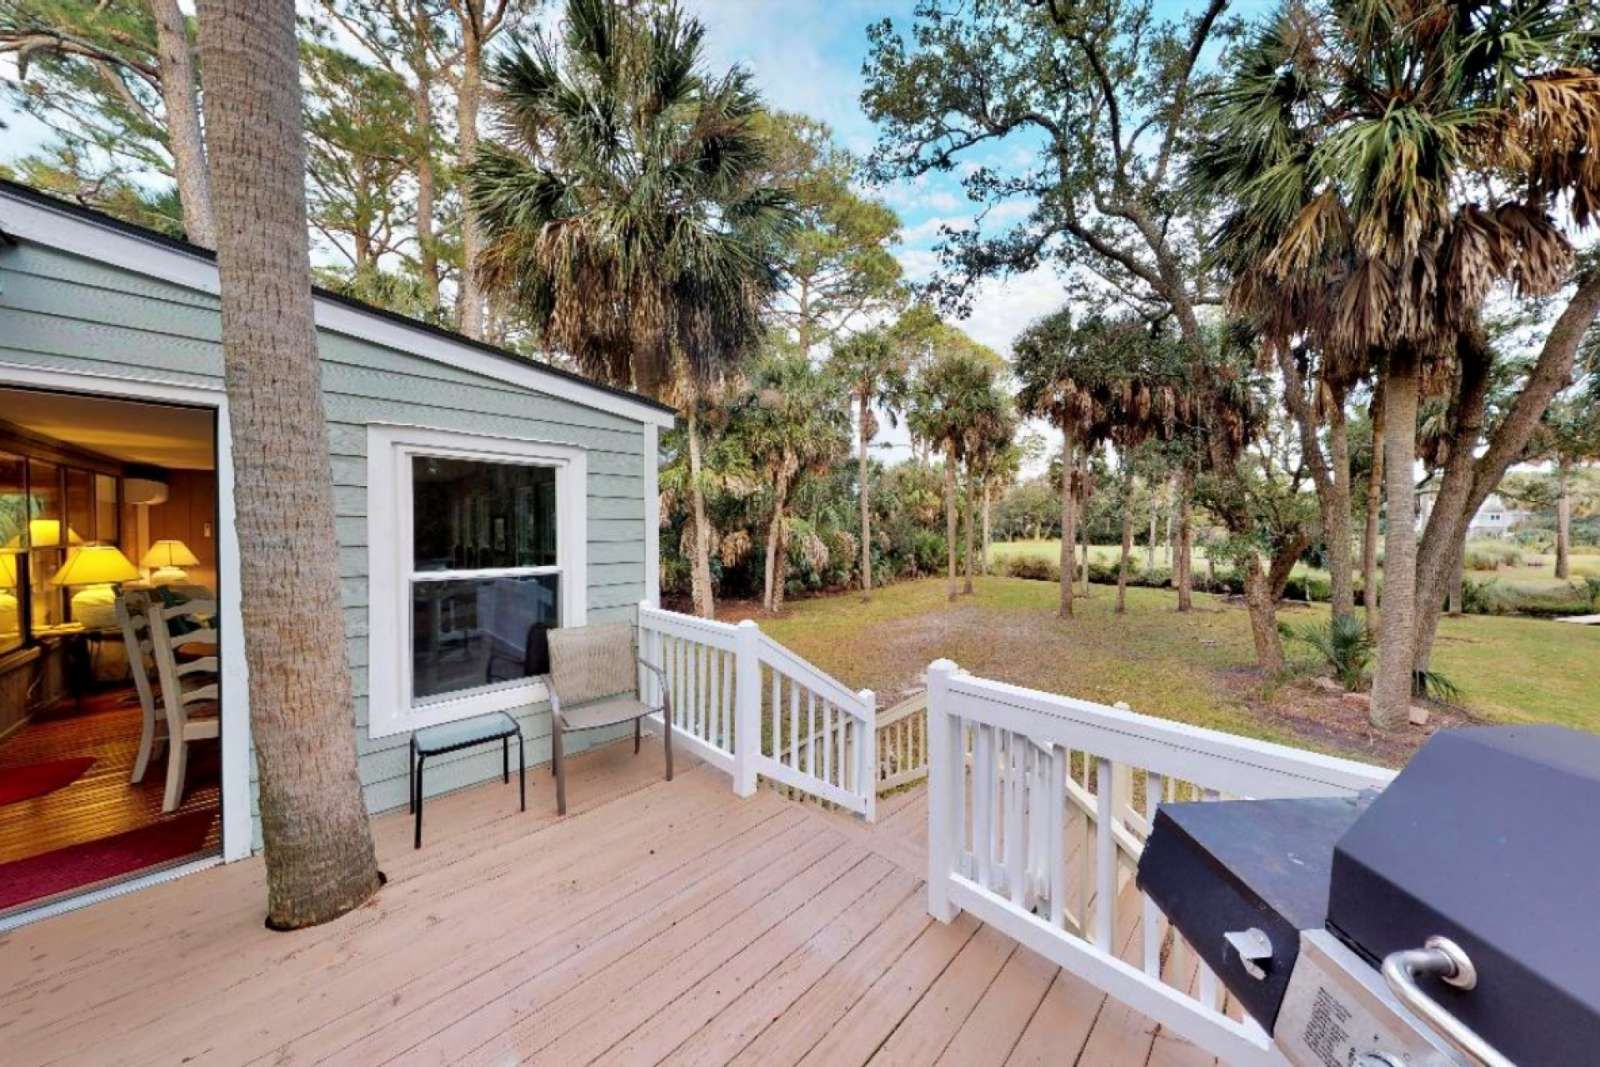 Saint Helena Island Vacation Rental New Listing Private 5 Bd Family Home 5 Mins To The Beach Sleeps 11 Golf Course Views 6 Bicycles In 2020 Island Vacation Rentals